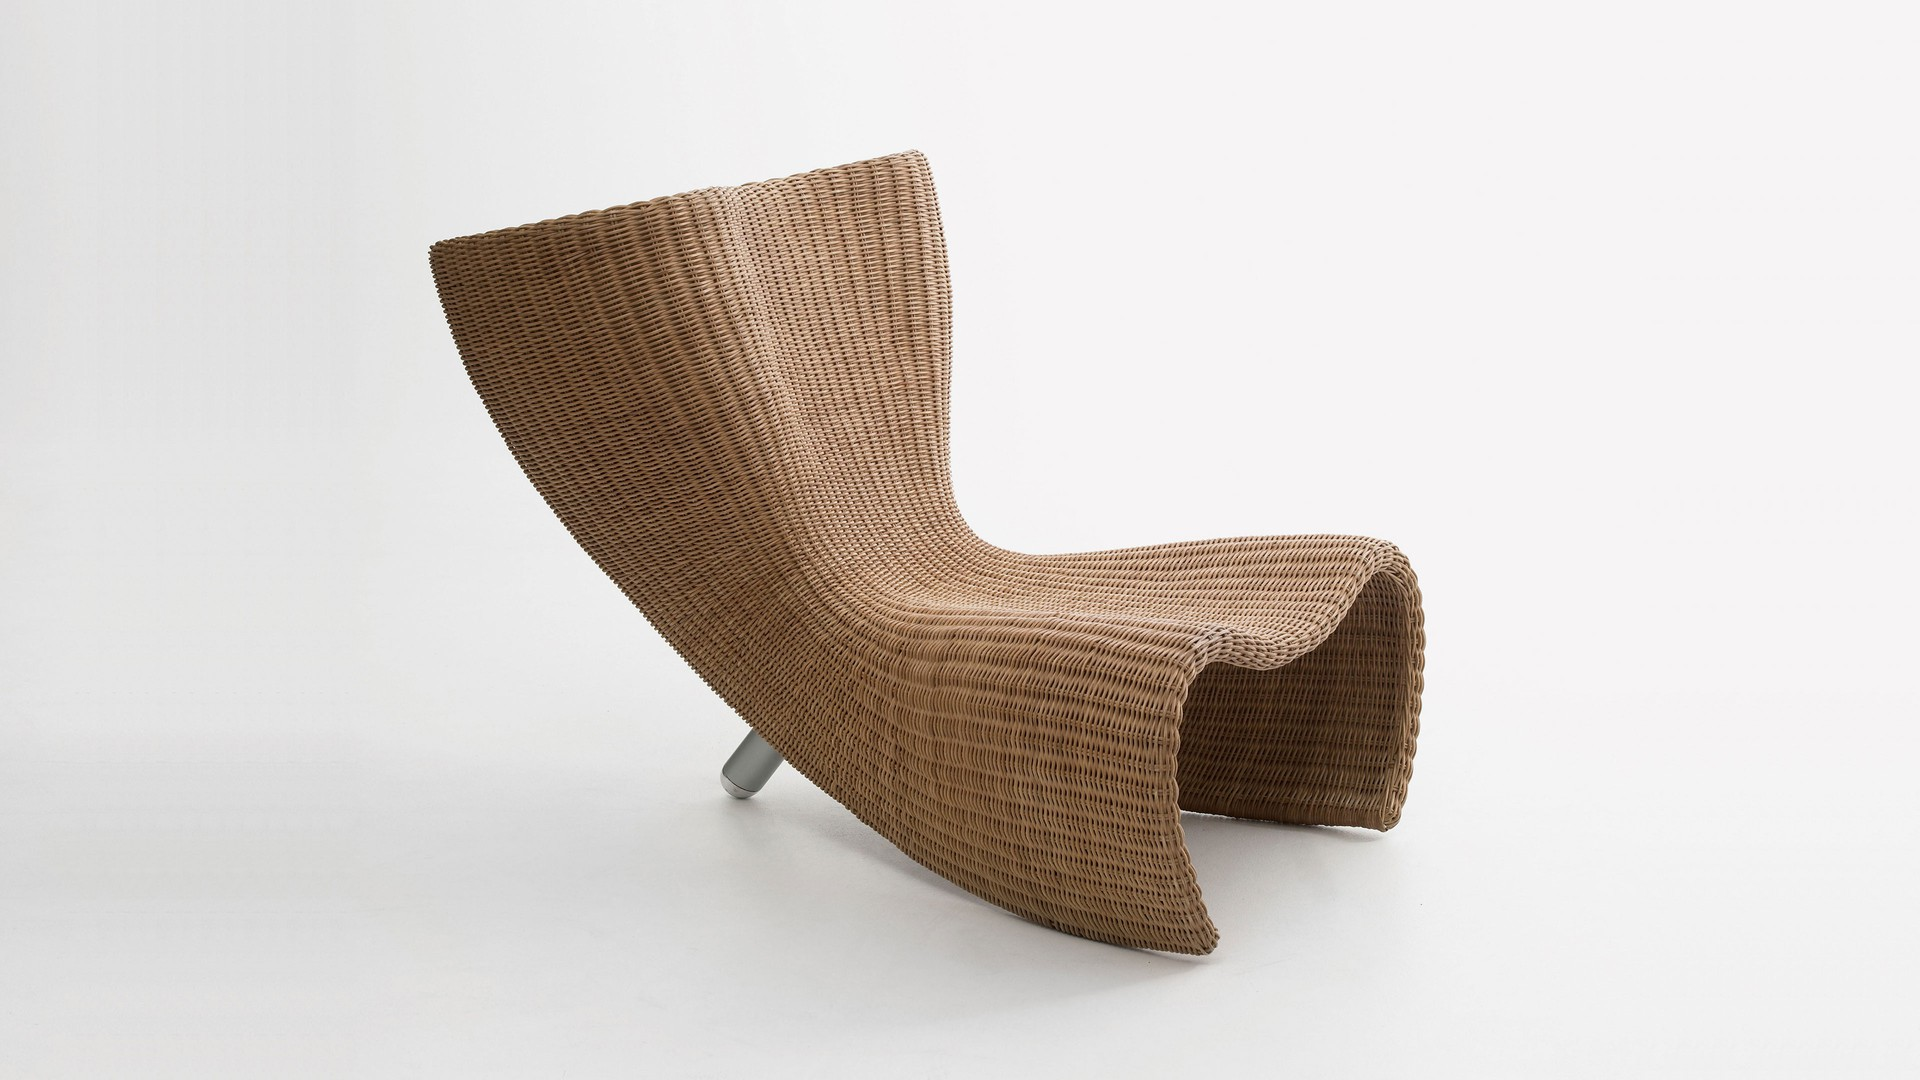 Wicker Chair And Lounge Marc Newson Ltd